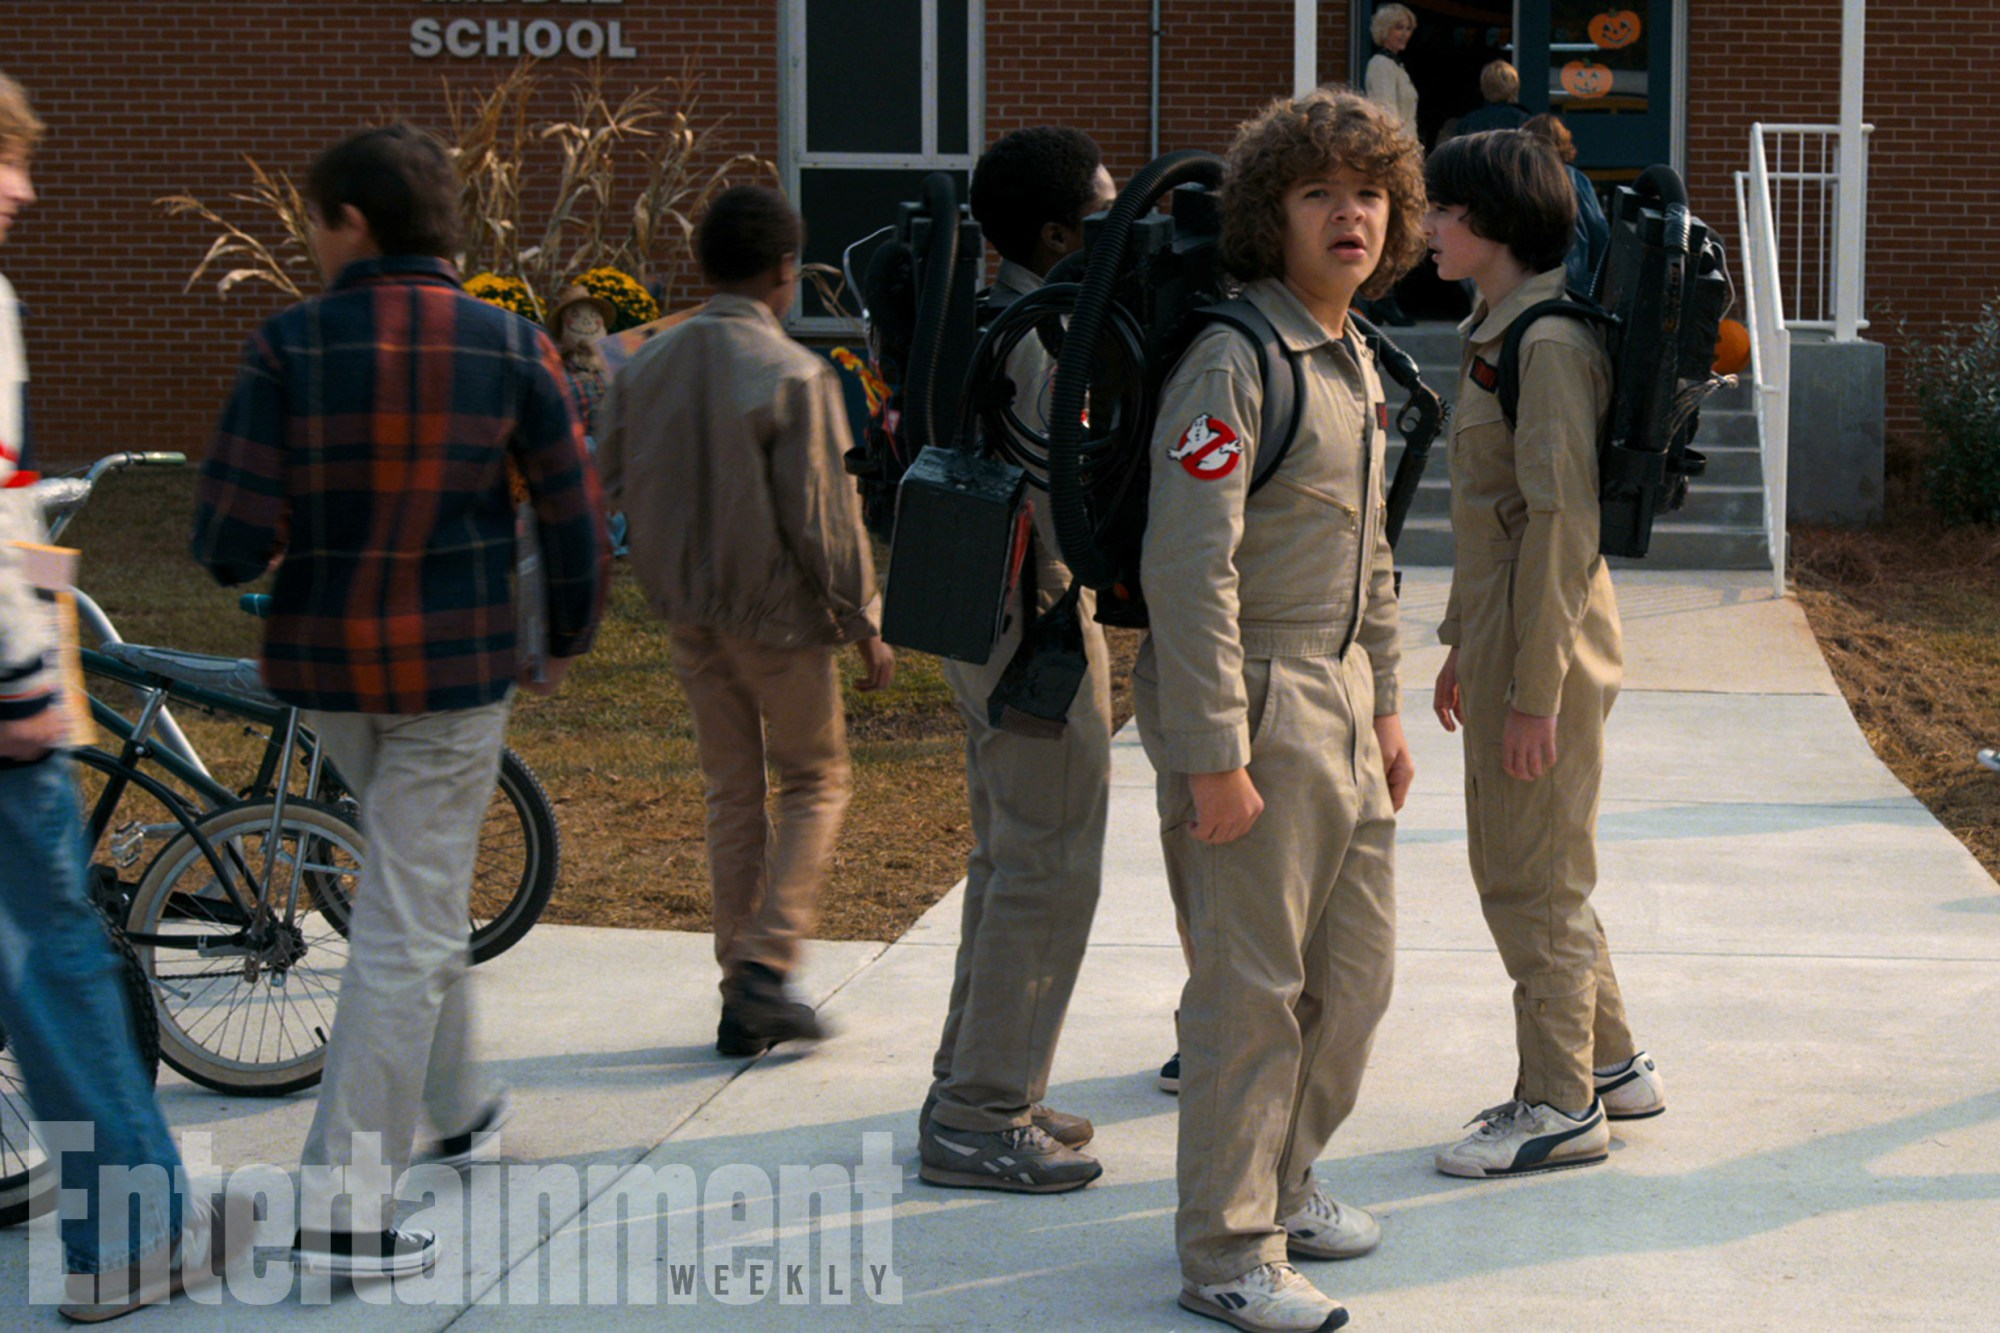 Stranger Things Ain't Afraid of No Ghosts in First Season 2 Image